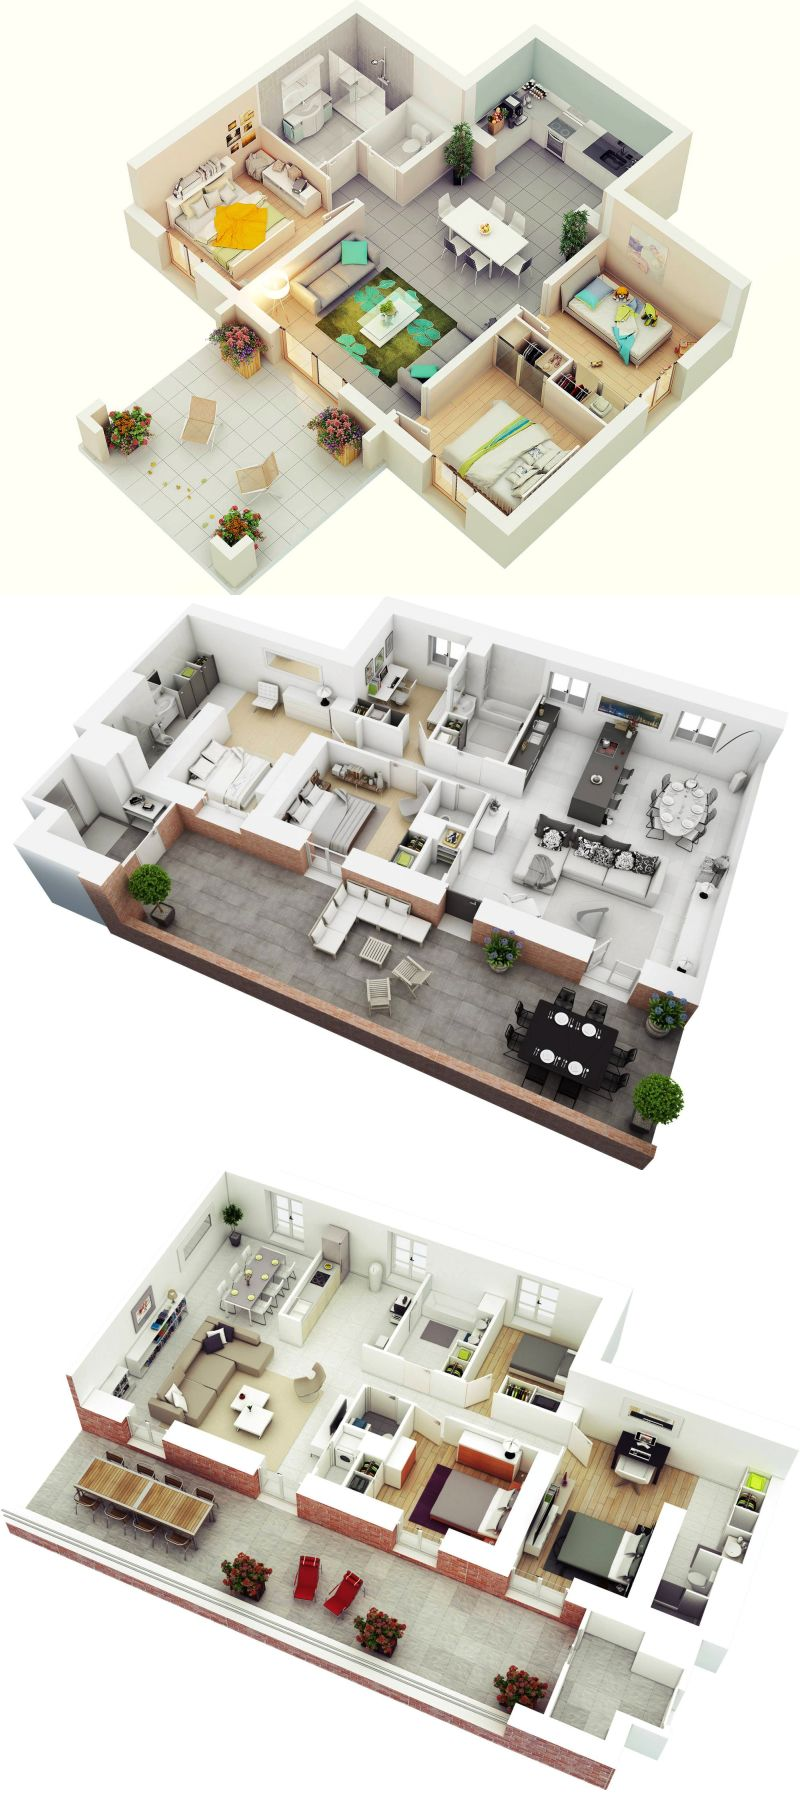 25 More 3 Bedroom 3D Floor Plans | Bedrooms, Sims and House